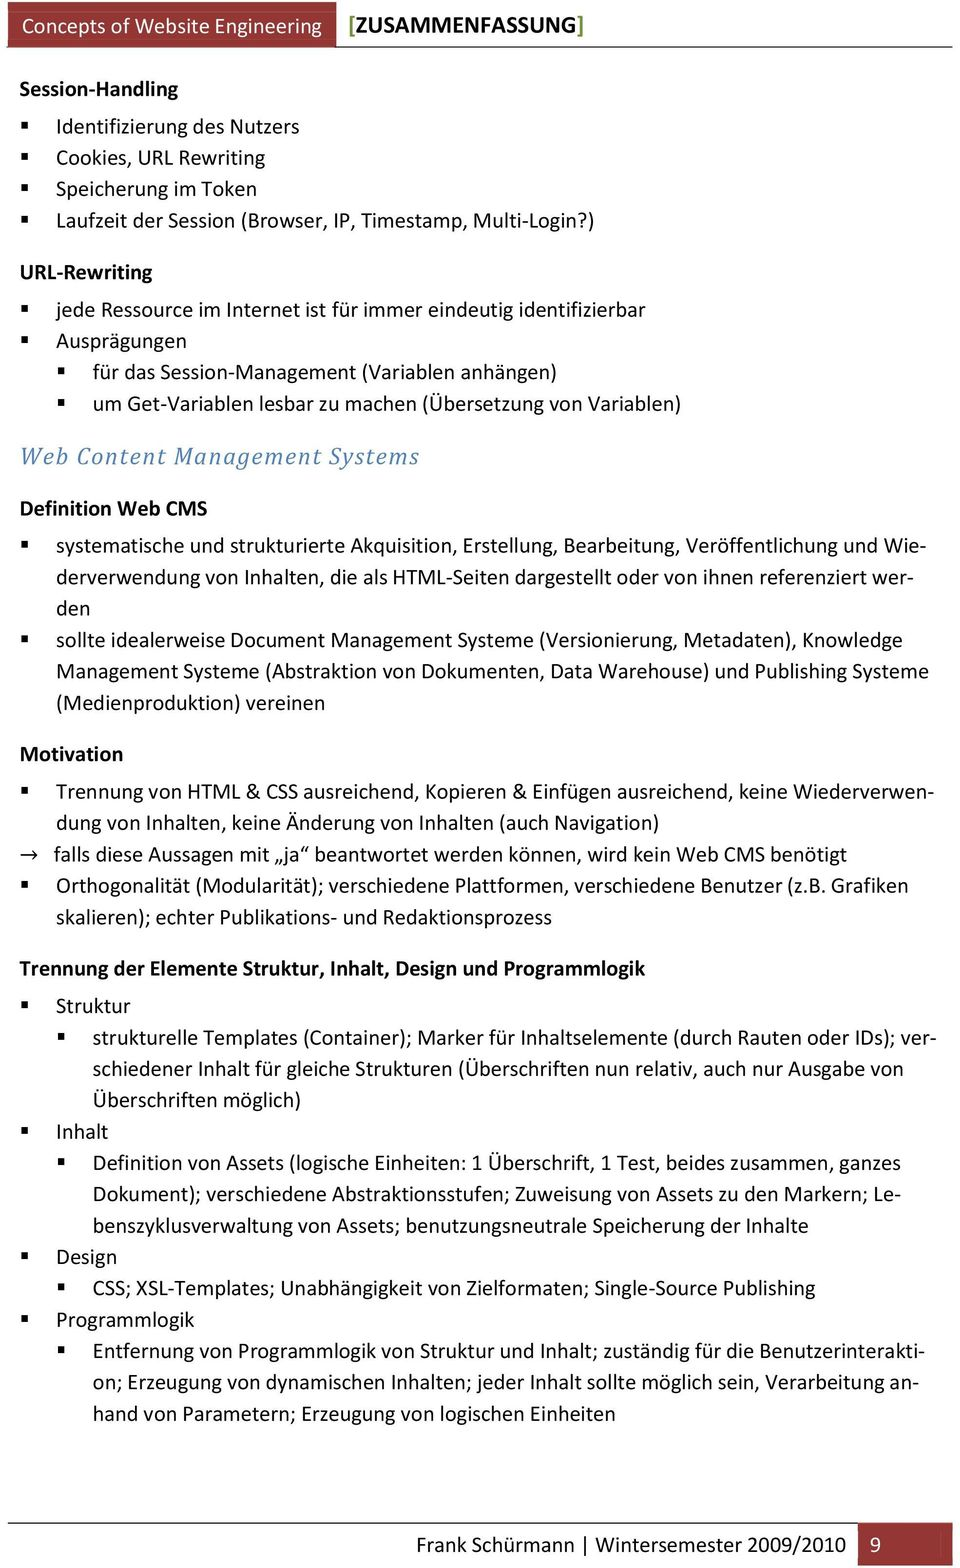 Variablen) Web Content Management Systems Definition Web CMS systematische und strukturierte Akquisition, Erstellung, Bearbeitung, Veröffentlichung und Wiederverwendung von Inhalten, die als